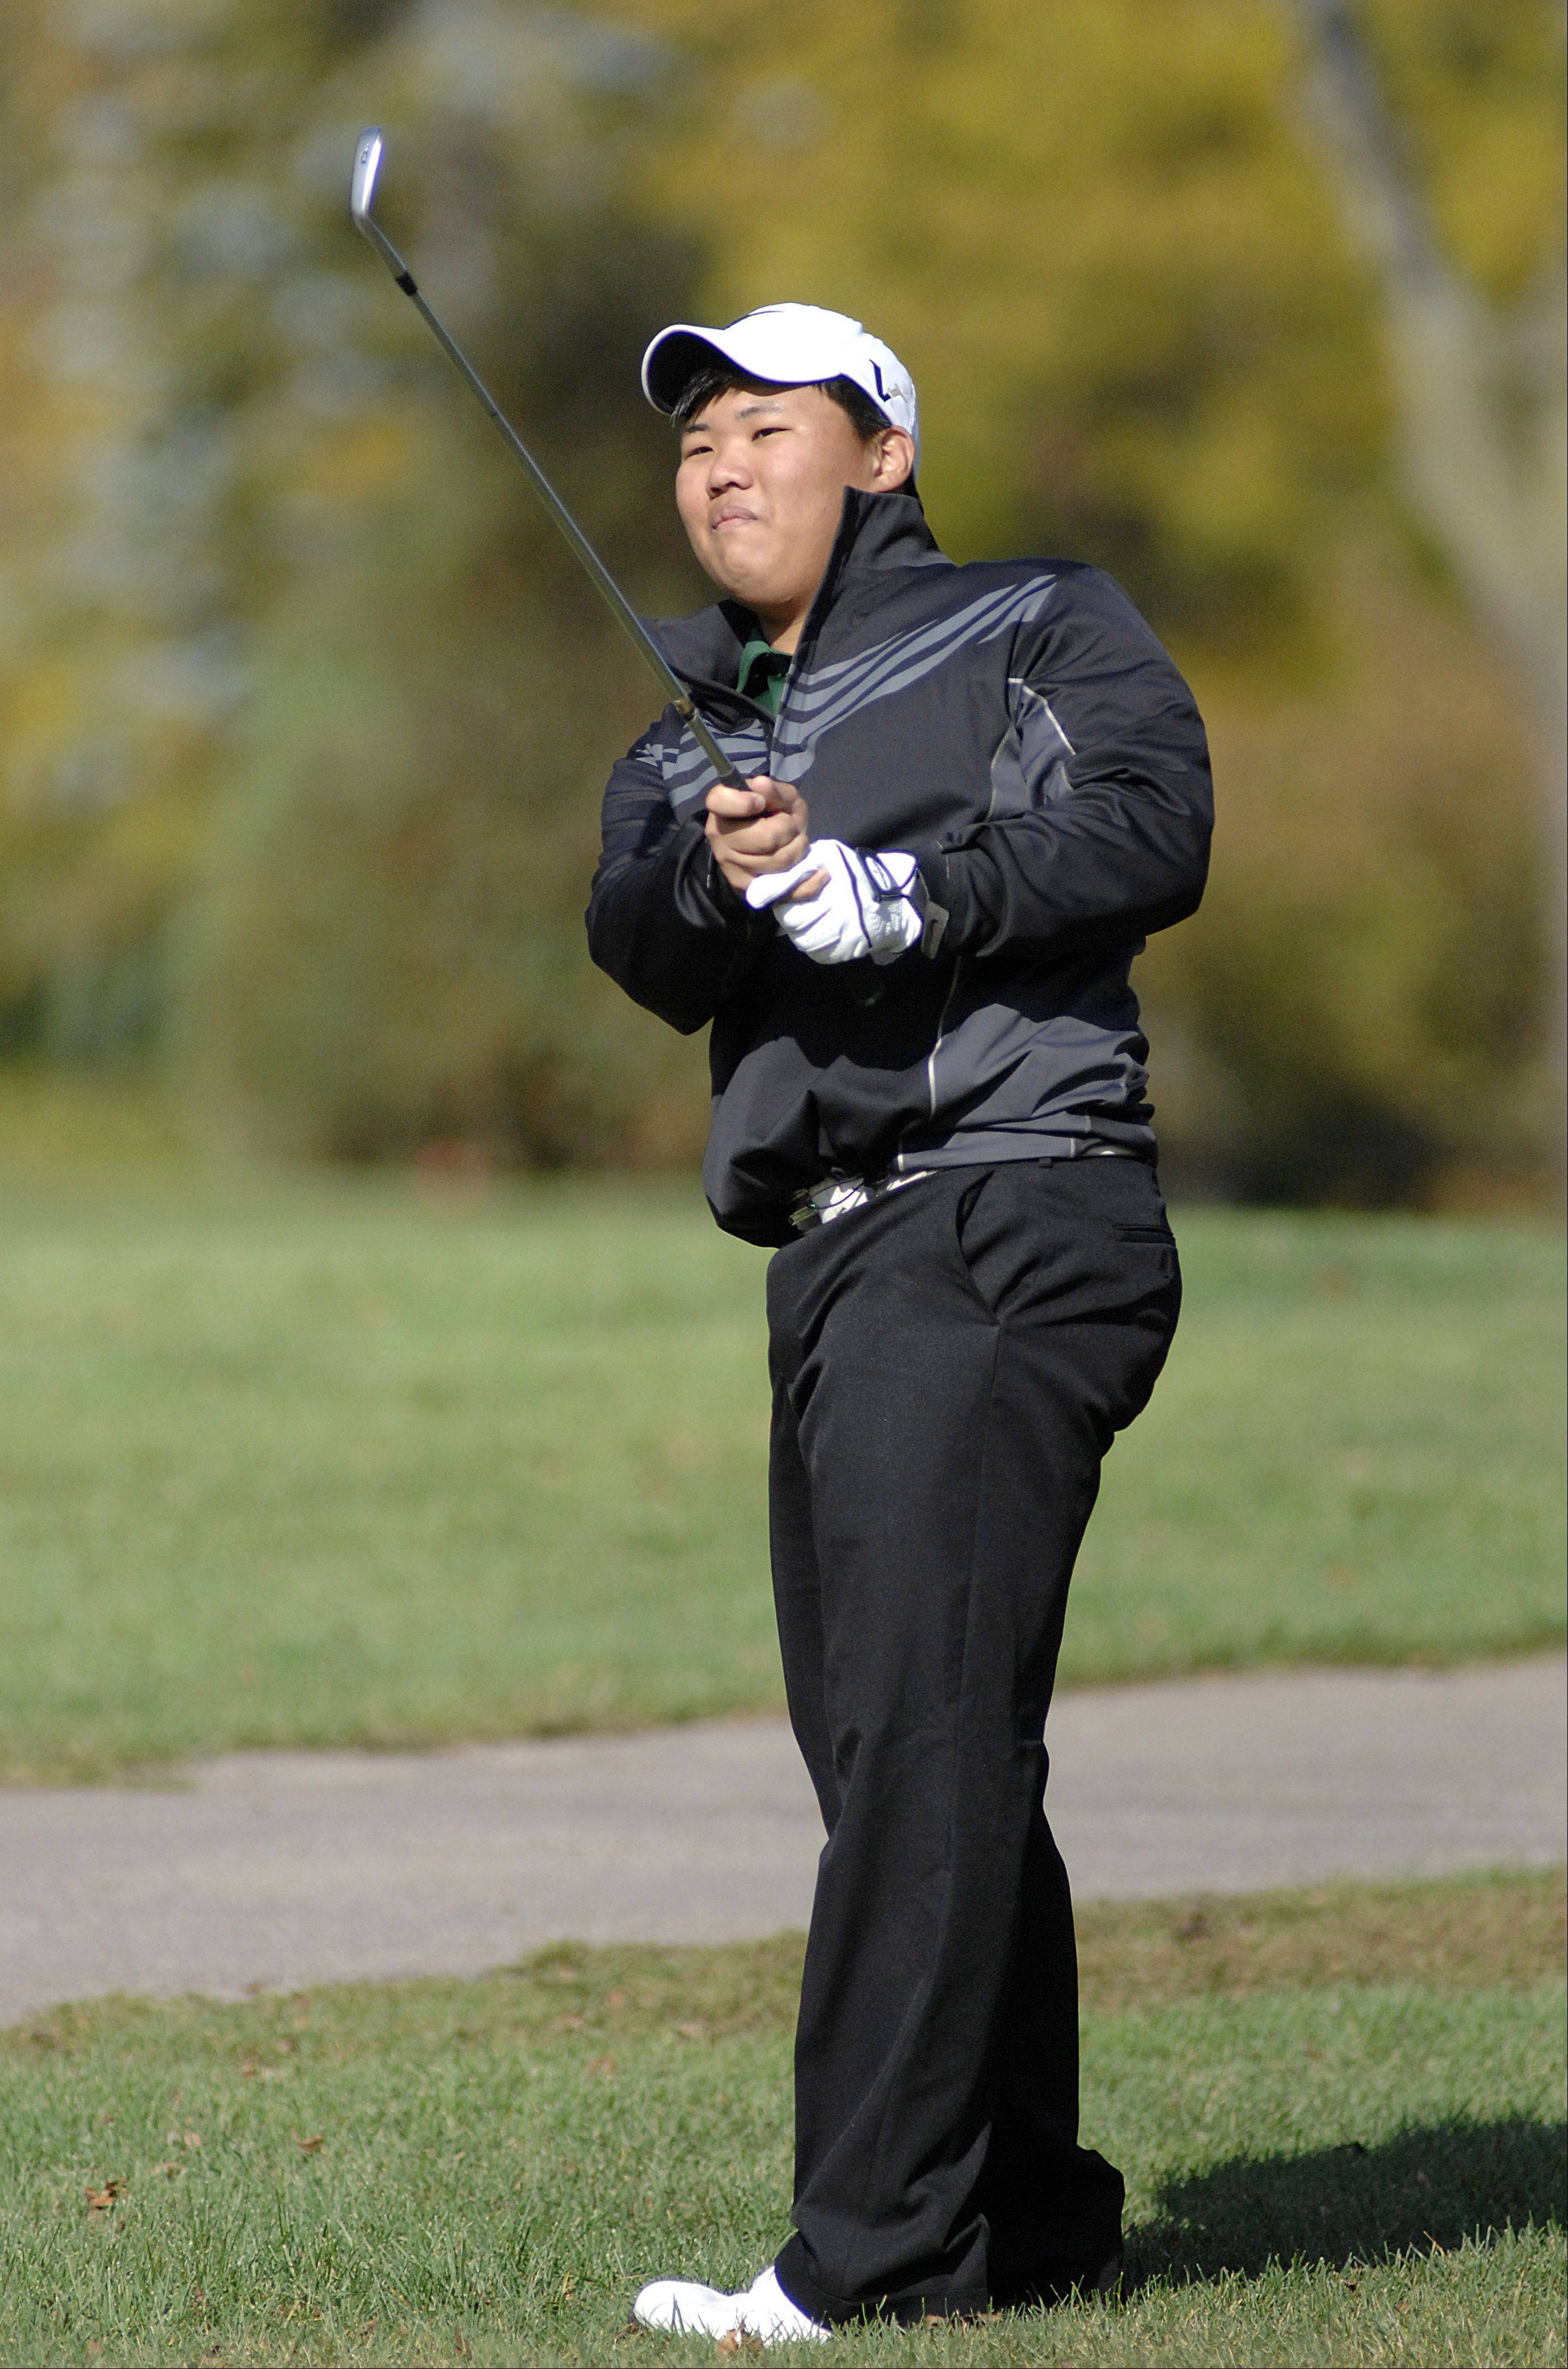 Grayslake Central's Dan Choi on the fifth hole in the Fox Valley Conference tournament at Crystal Woods Golf Course in Woodstock on Thursday, September 27.